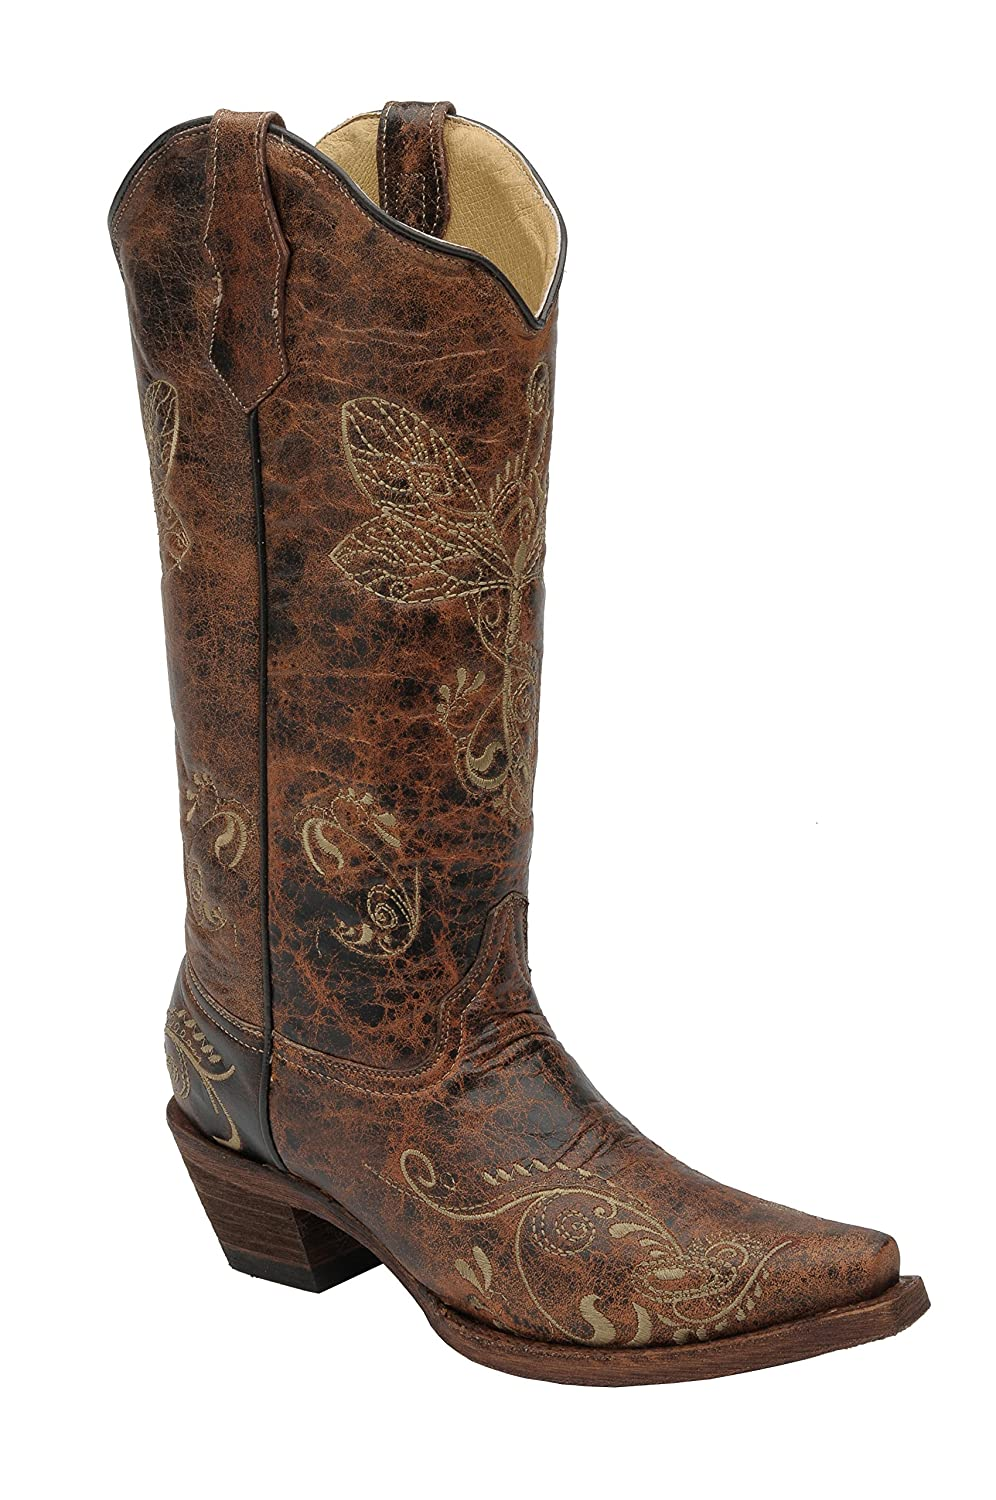 Corral Women's Circle G Distressed Bone Dragonfly Embroidered Western Boot B00H8ZK29O 10 B(M) US|Bone